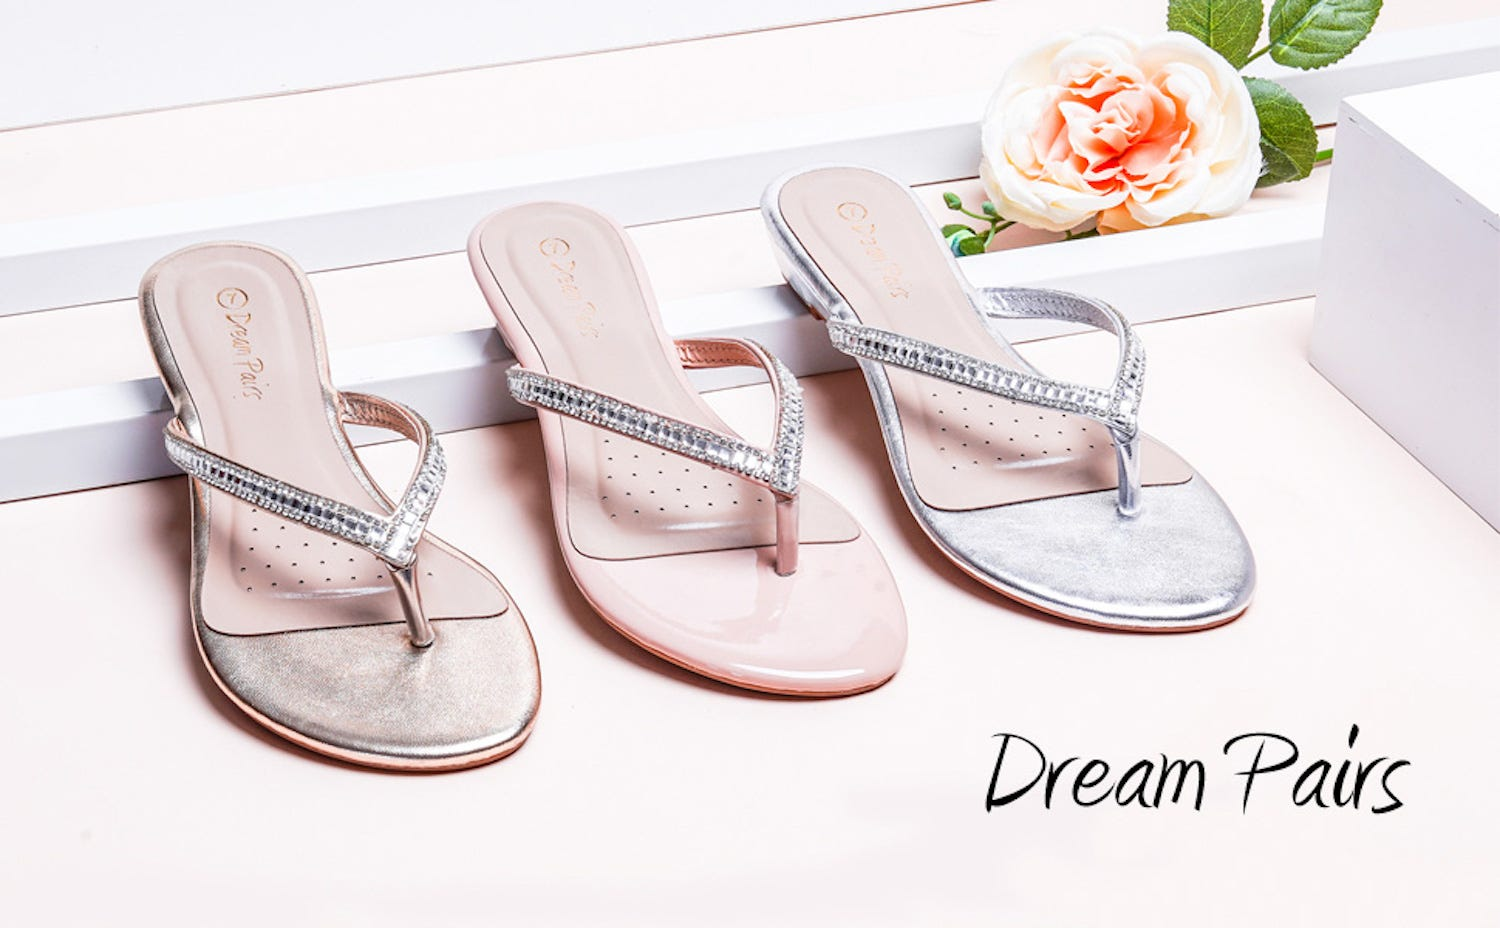 Three sparkly sandals, in bronze, pink, and silver, sitting on a white display